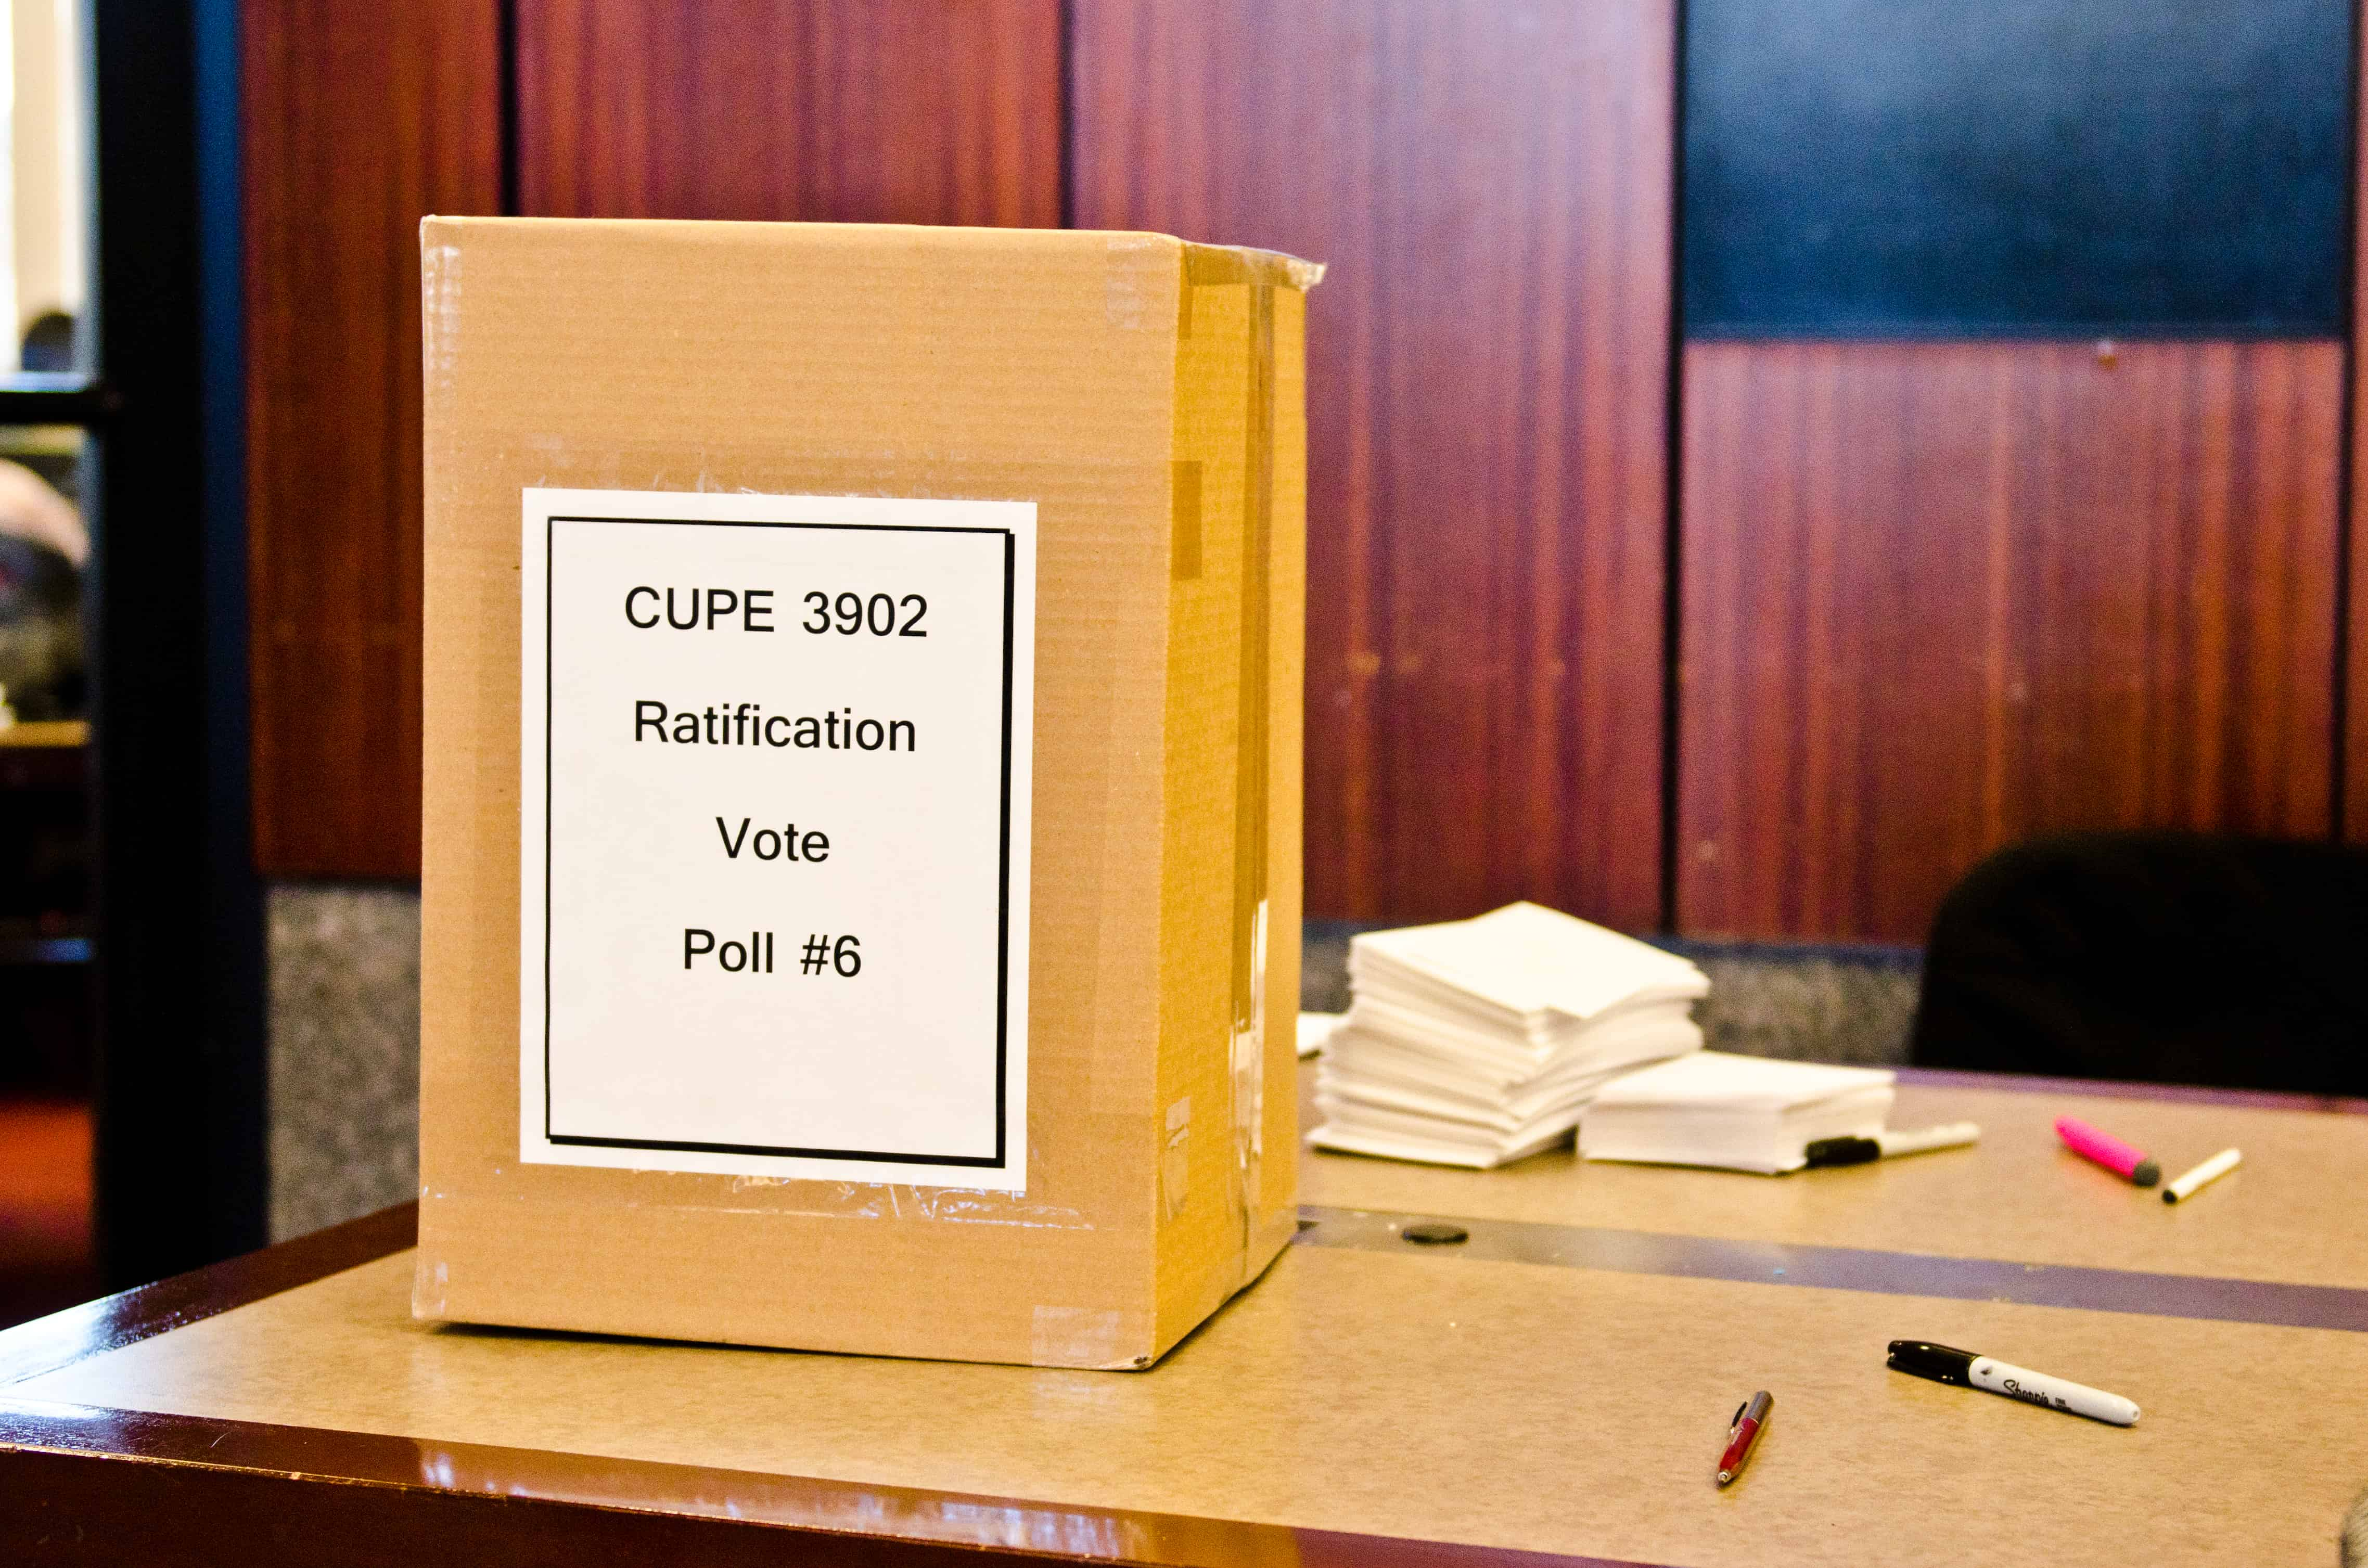 CUPE strike prevented, deal ratified